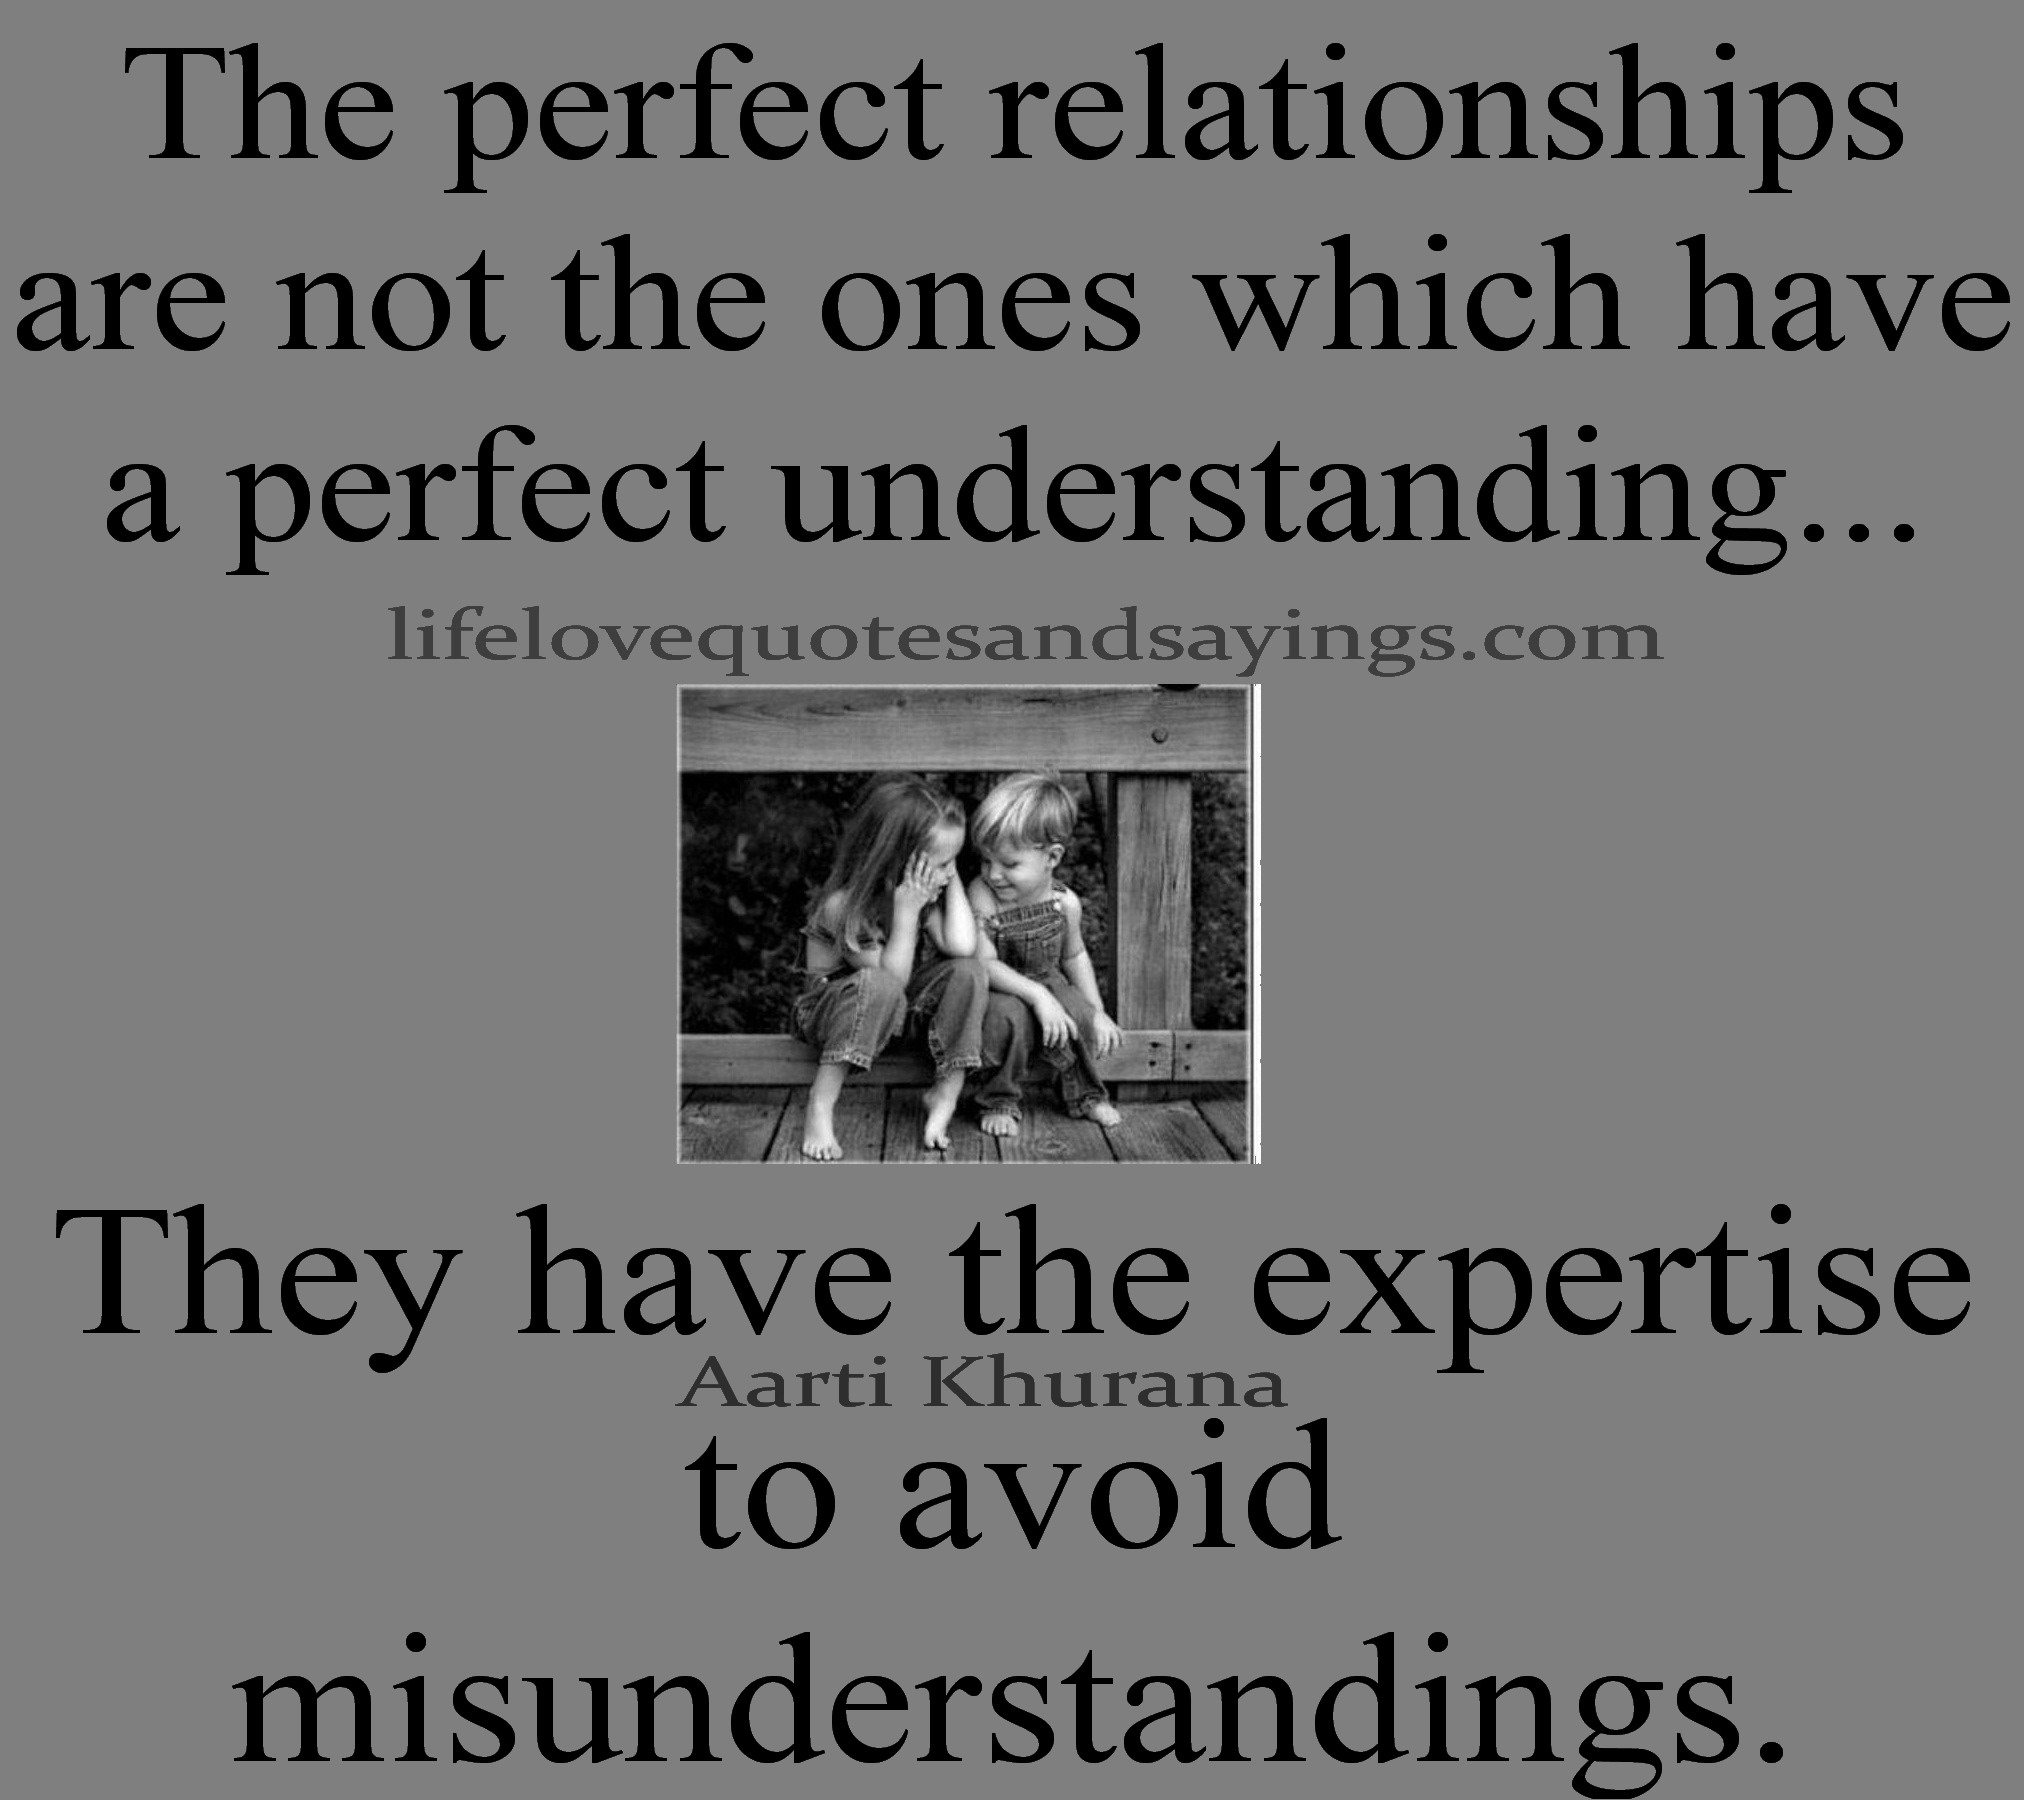 Quotes About Love Relationships: Understanding Quotes About Relationships. QuotesGram